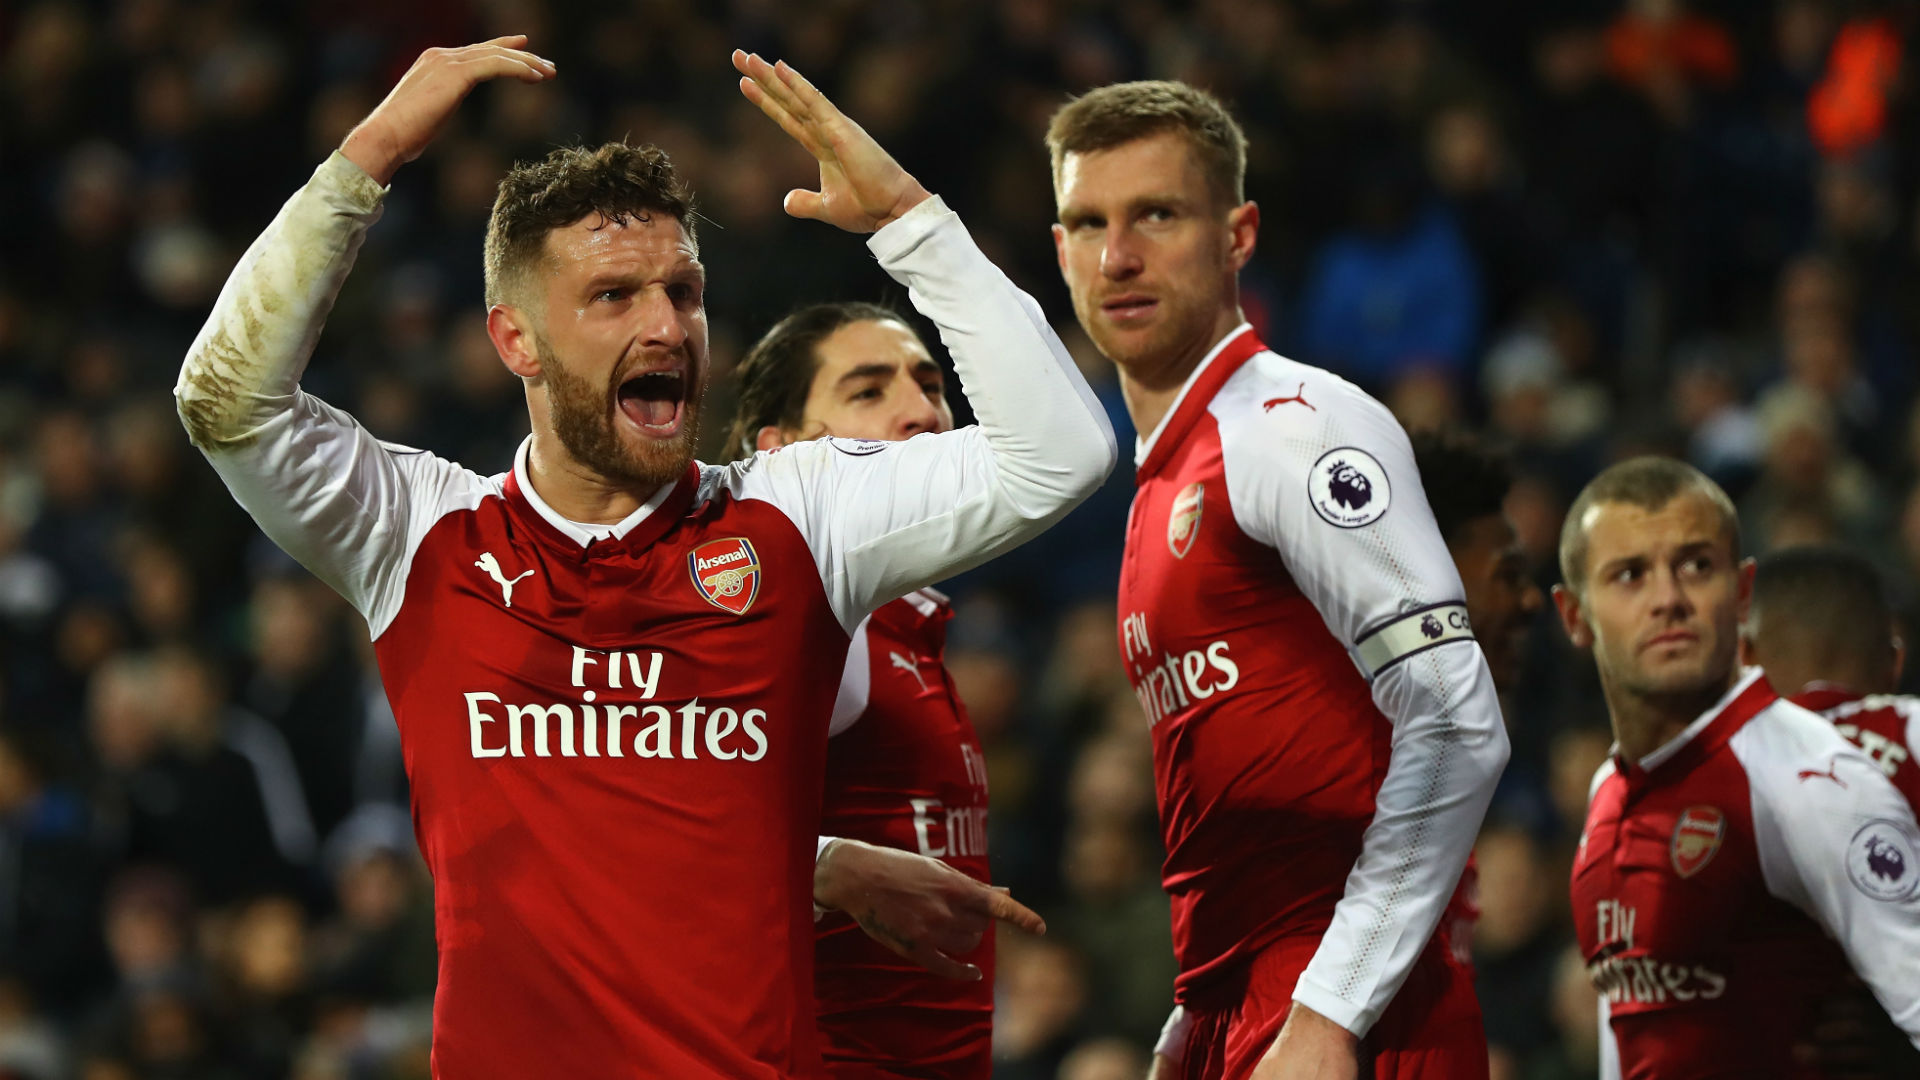 Arsenal vs Chelsea: Controversy as Bellerin rescues point for Gunners